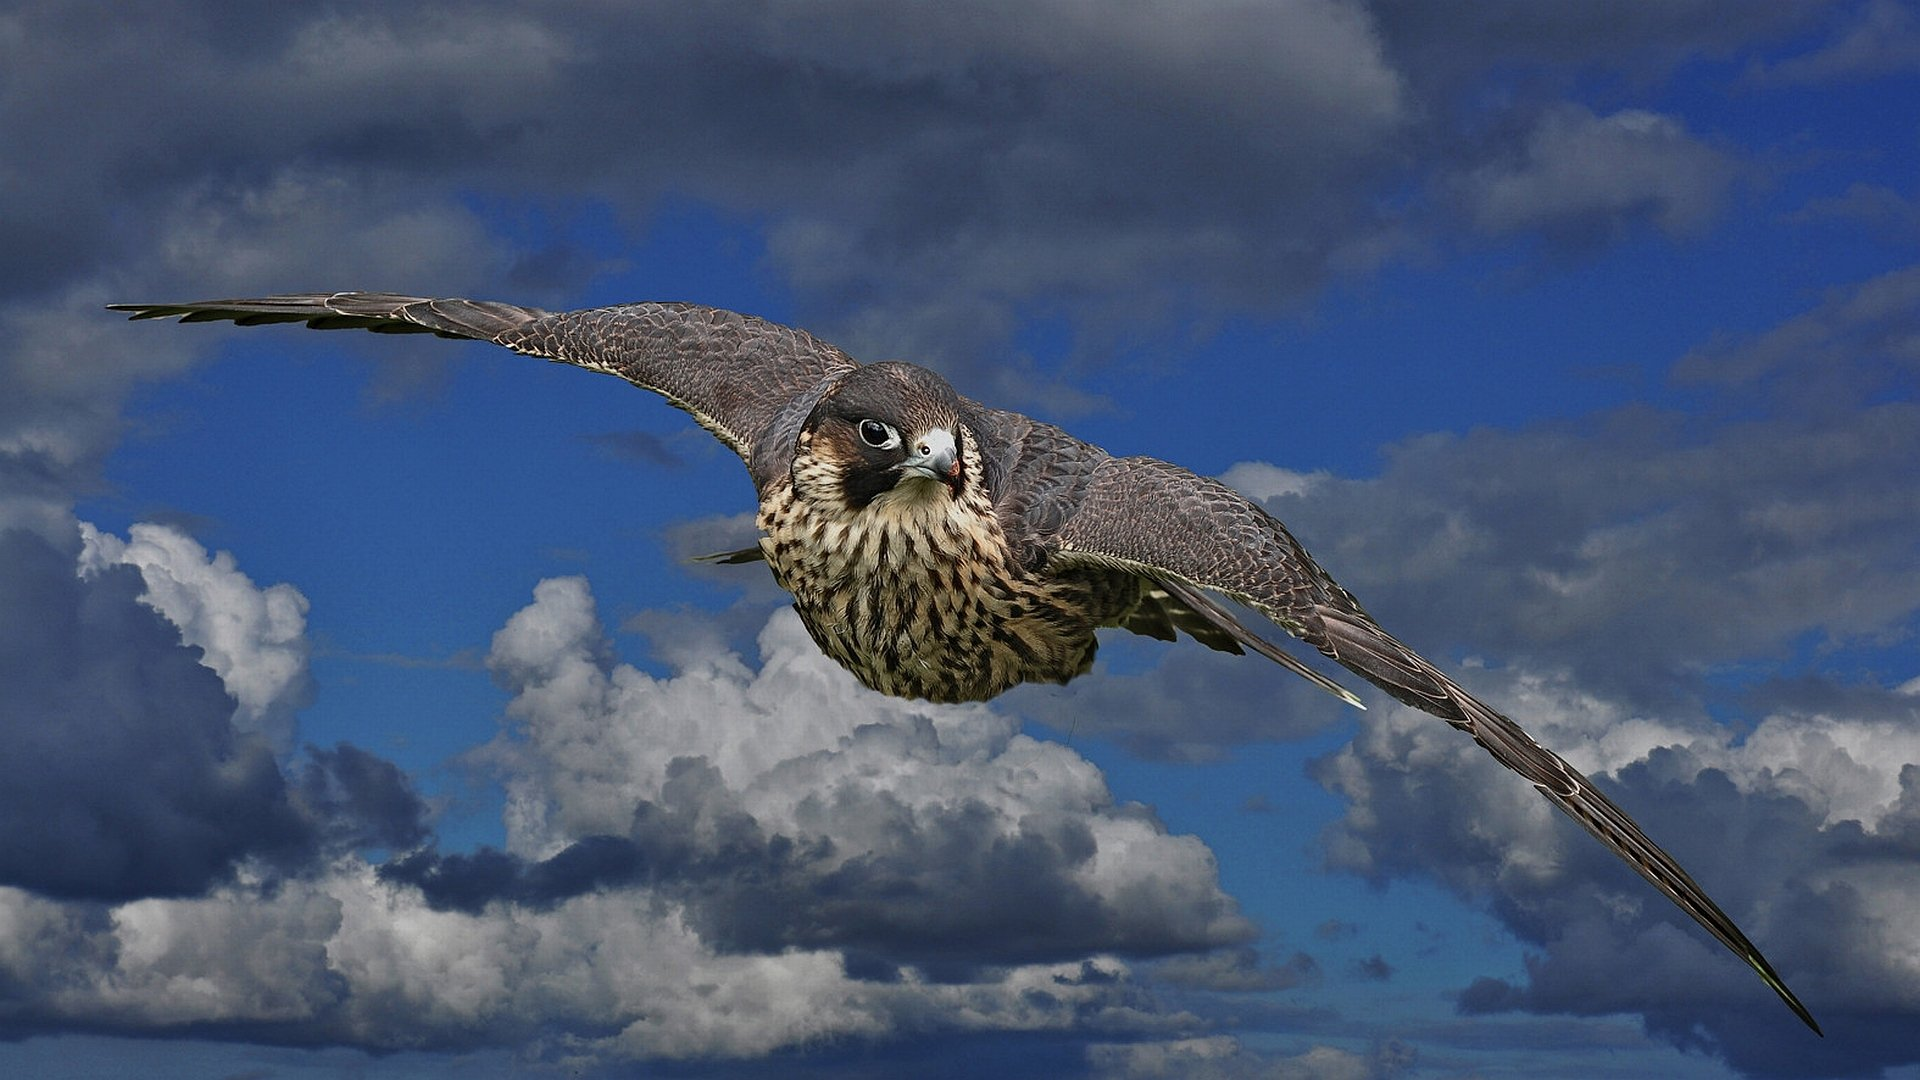 Falcon hd wallpaper background image 1920x1080 id - Birds of prey wallpaper hd ...